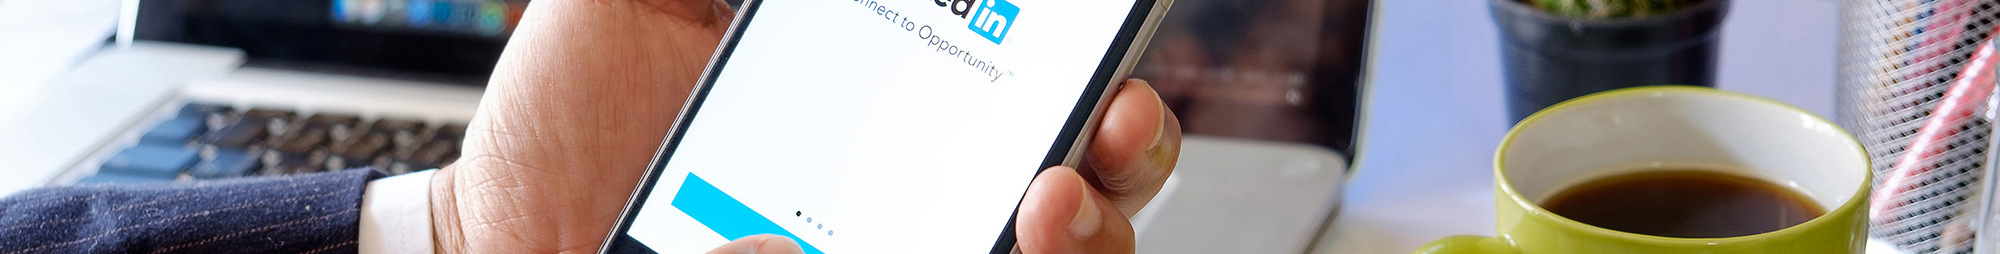 instructions on how to register and complete a profile on linkedin